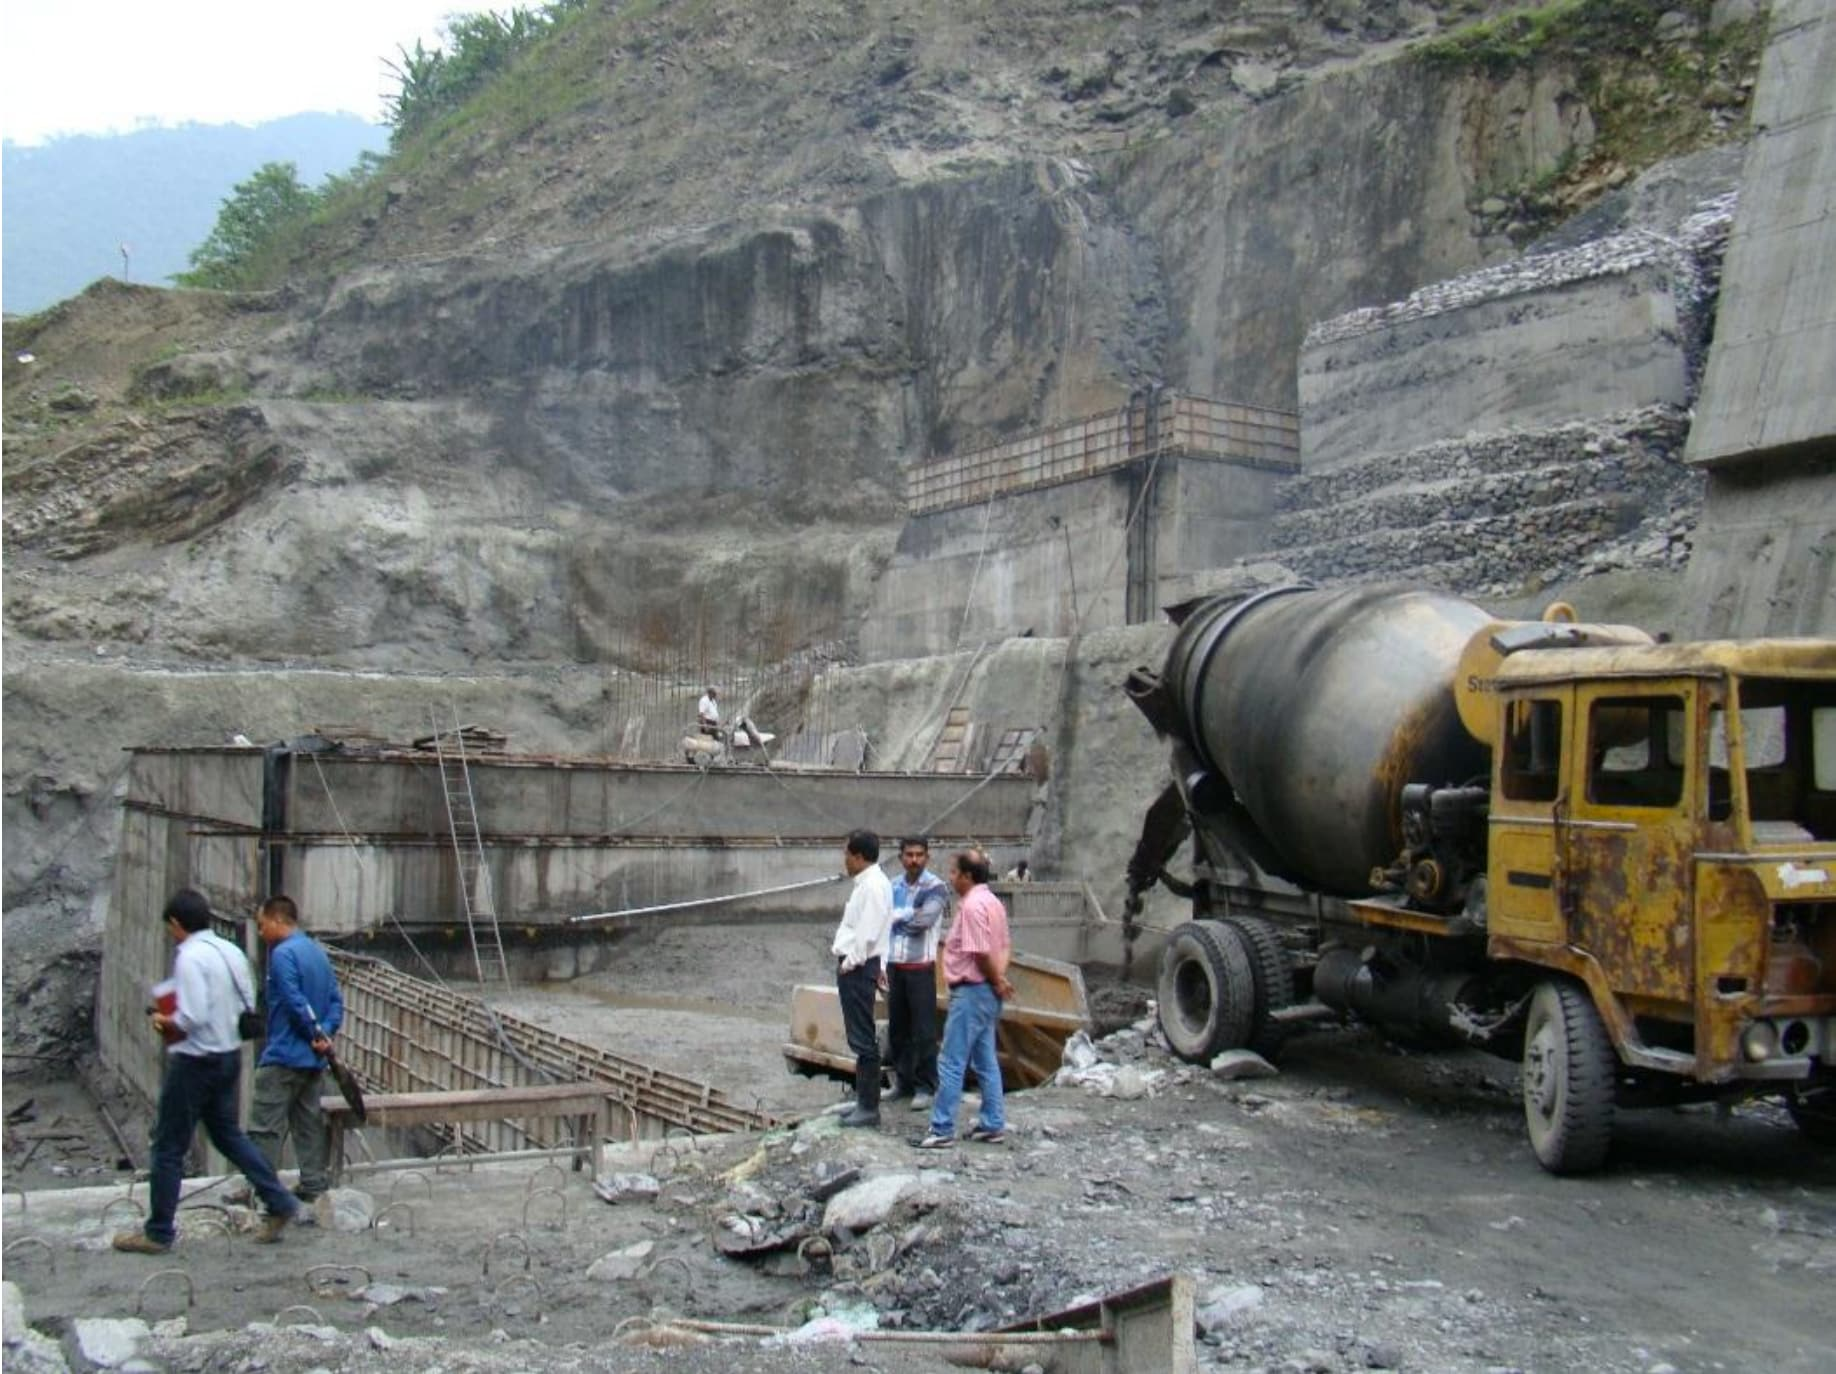 Construction activities at the Bichom Dam. (Photo: Monitoring Report, MoEF)